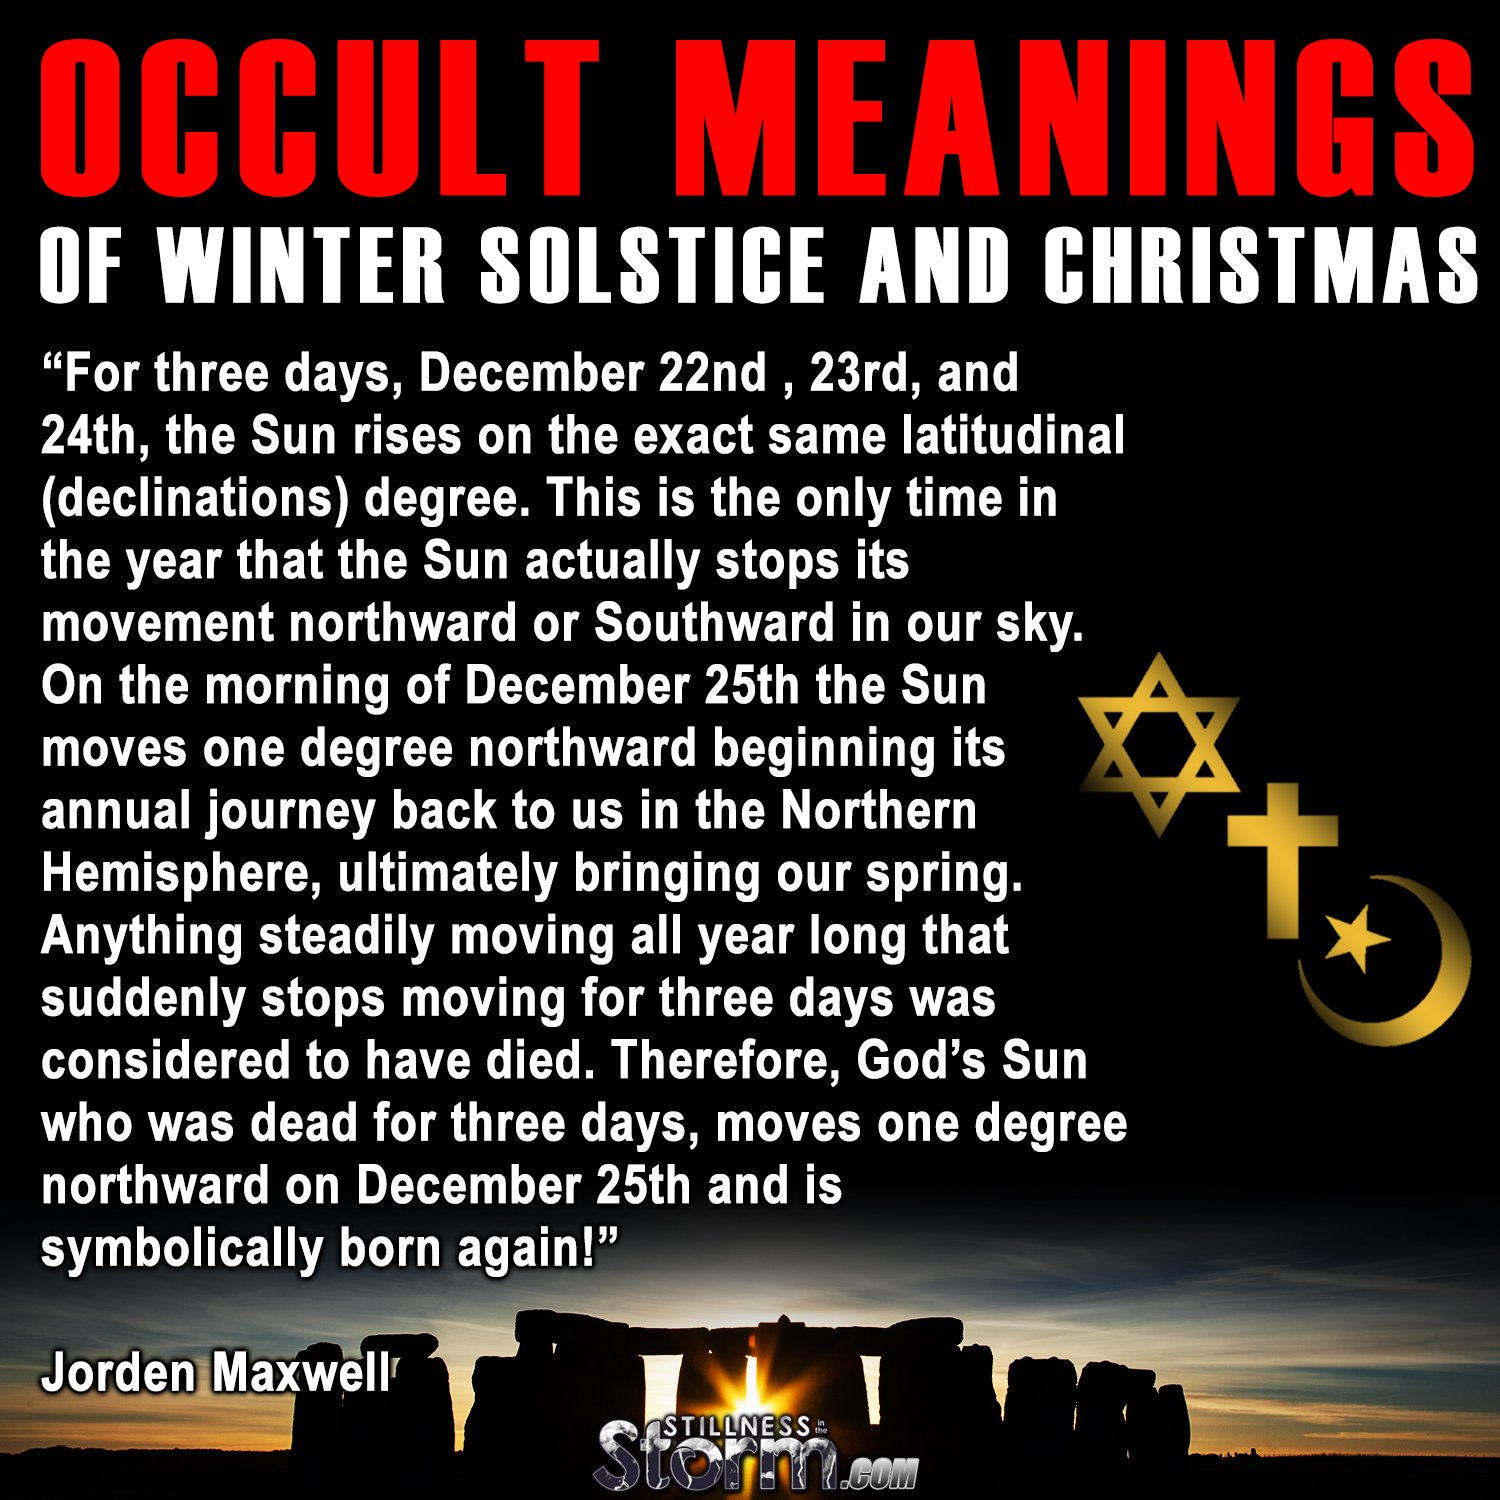 occult meanings of winter solstice and christmas